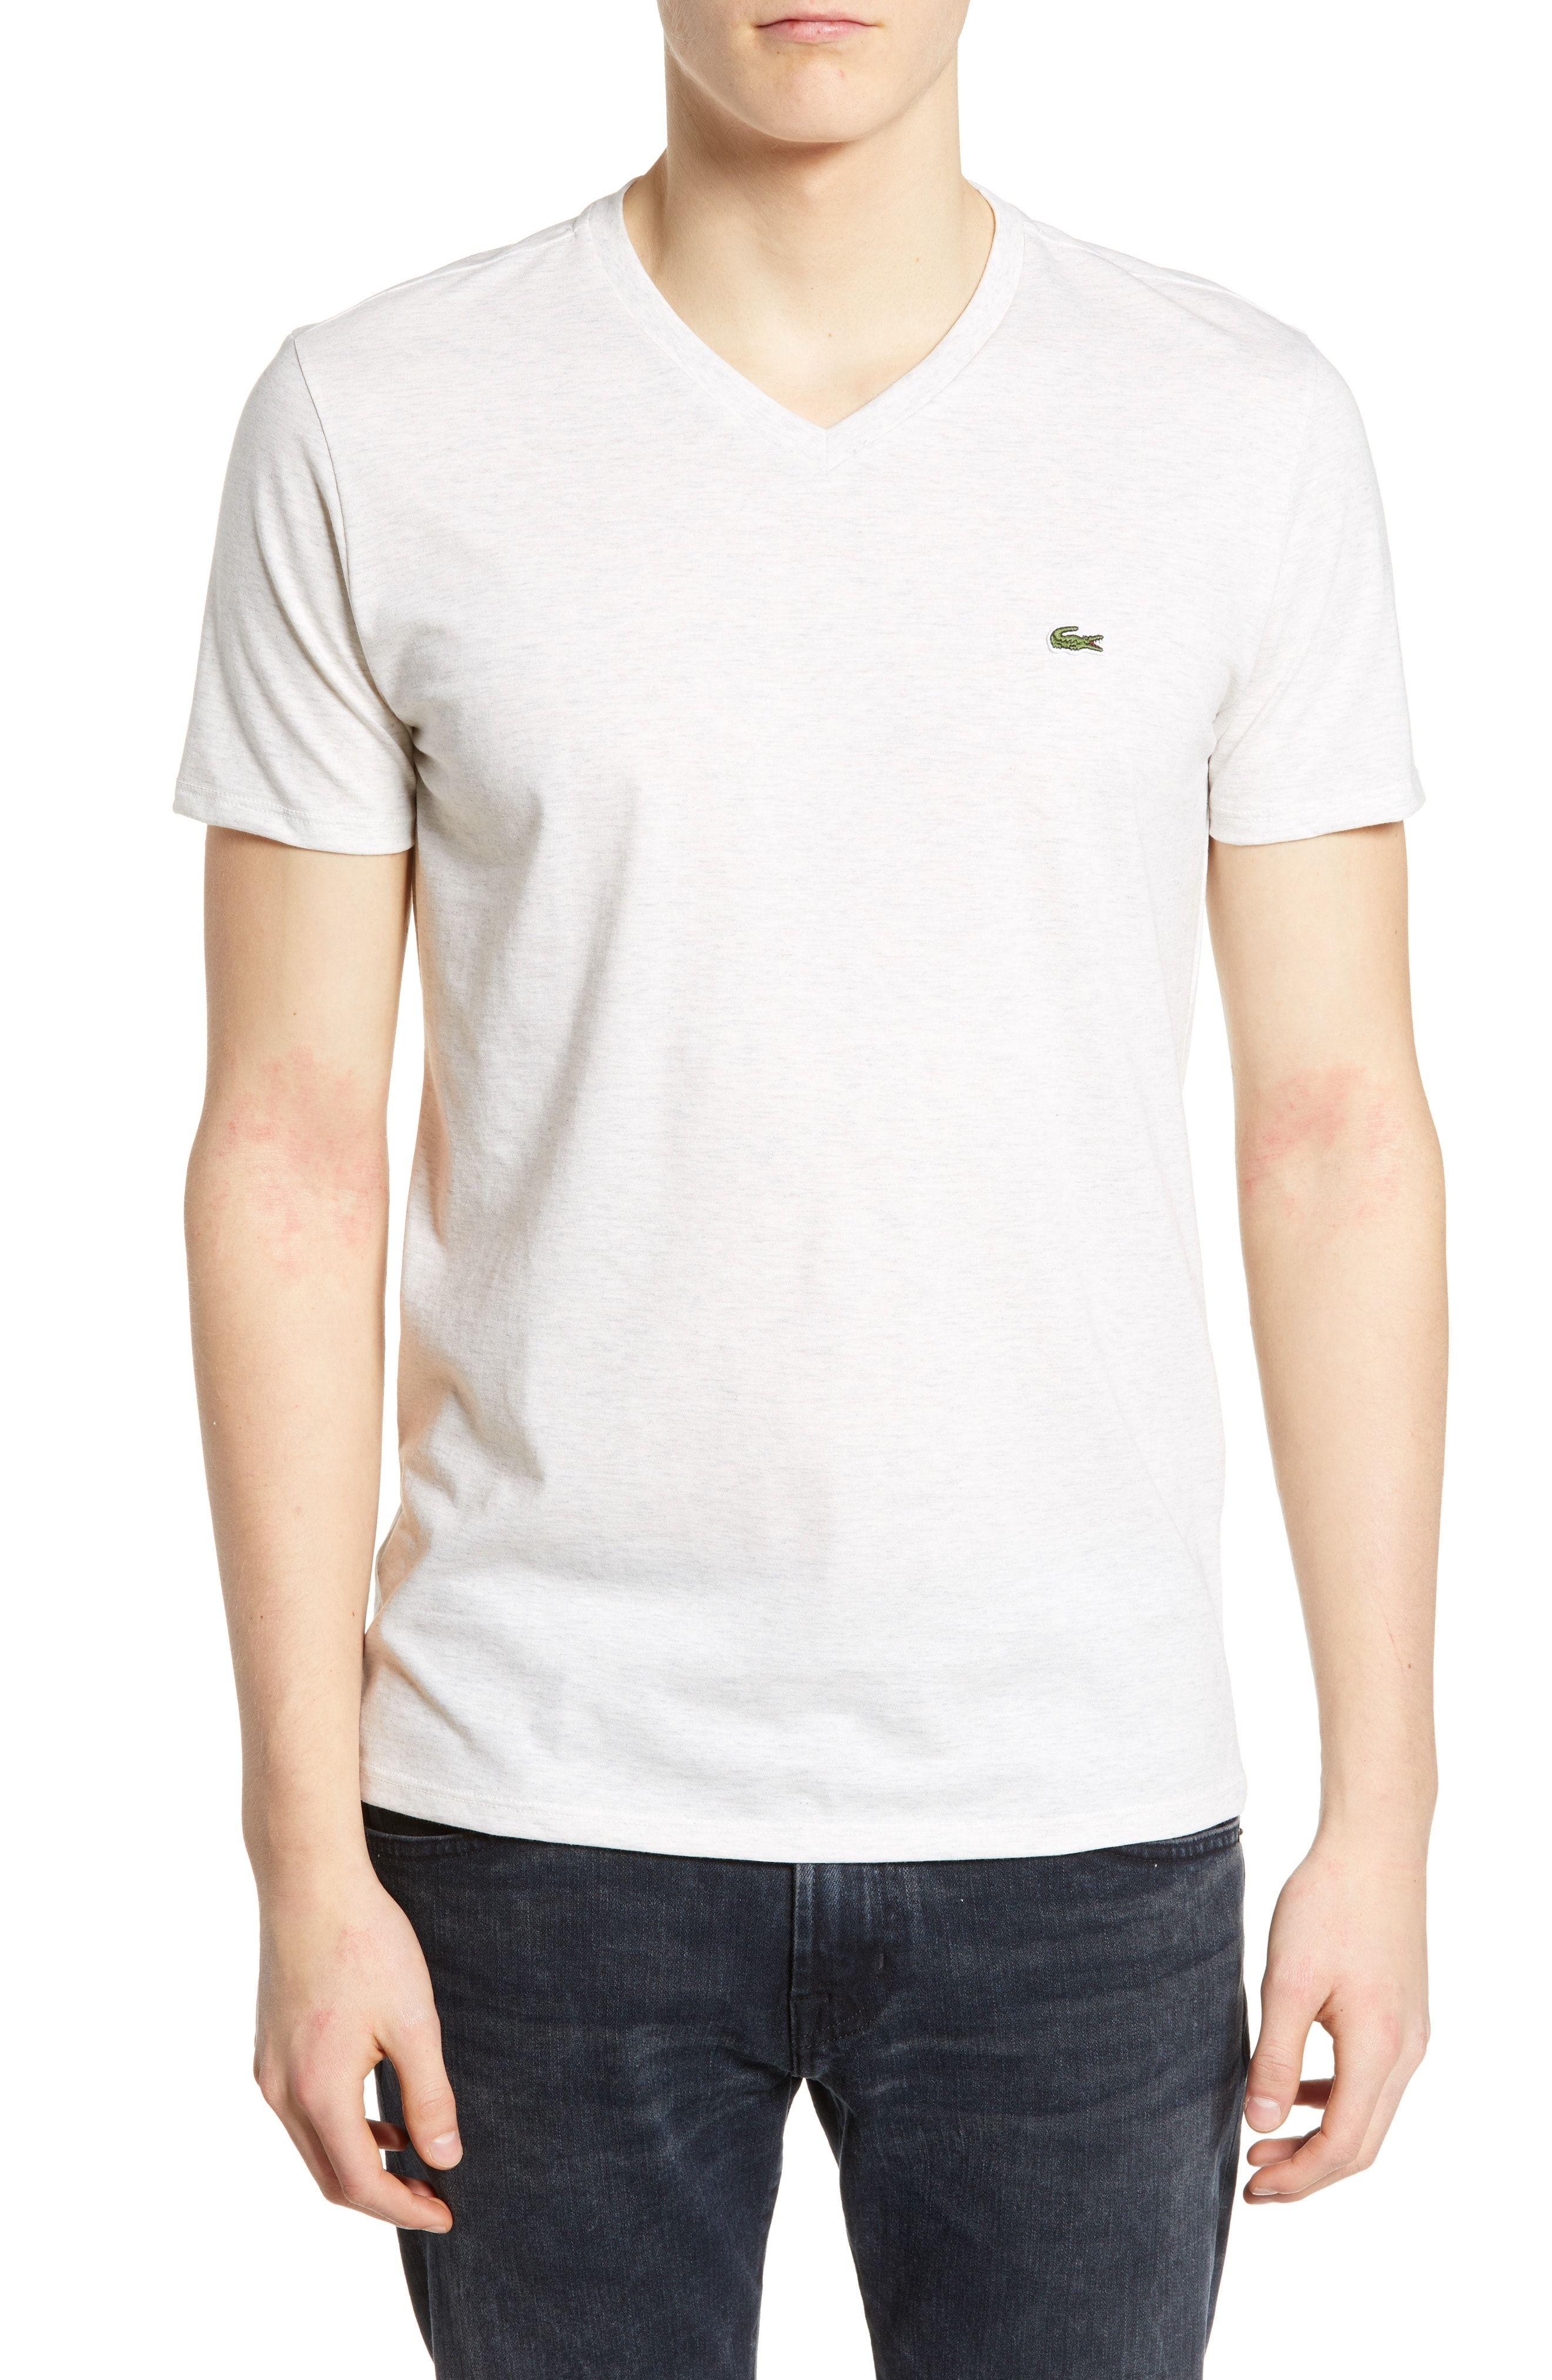 4892d1b584 LACOSTE V-NECK T-SHIRT.  lacoste  cloth